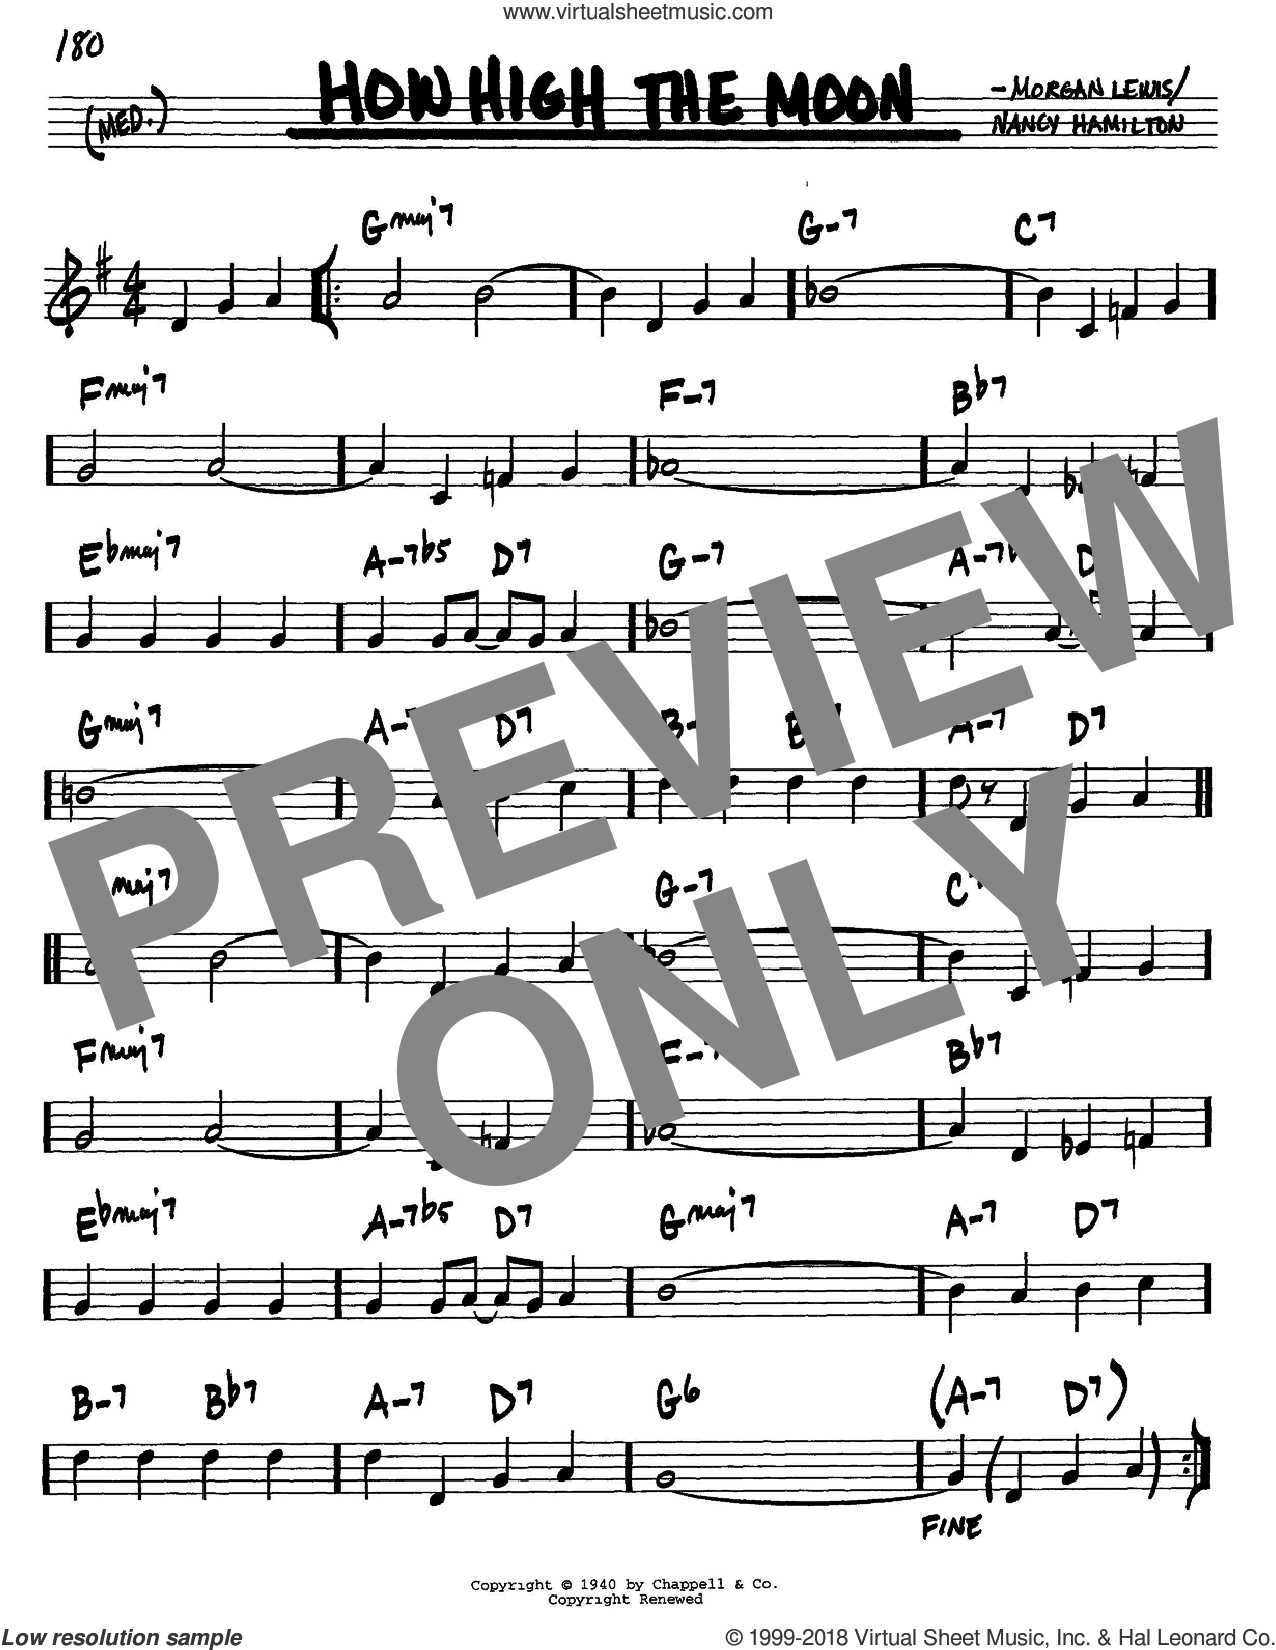 How High The Moon sheet music for voice and other instruments (C) by Les Paul, Morgan Lewis and Nancy Hamilton. Score Image Preview.